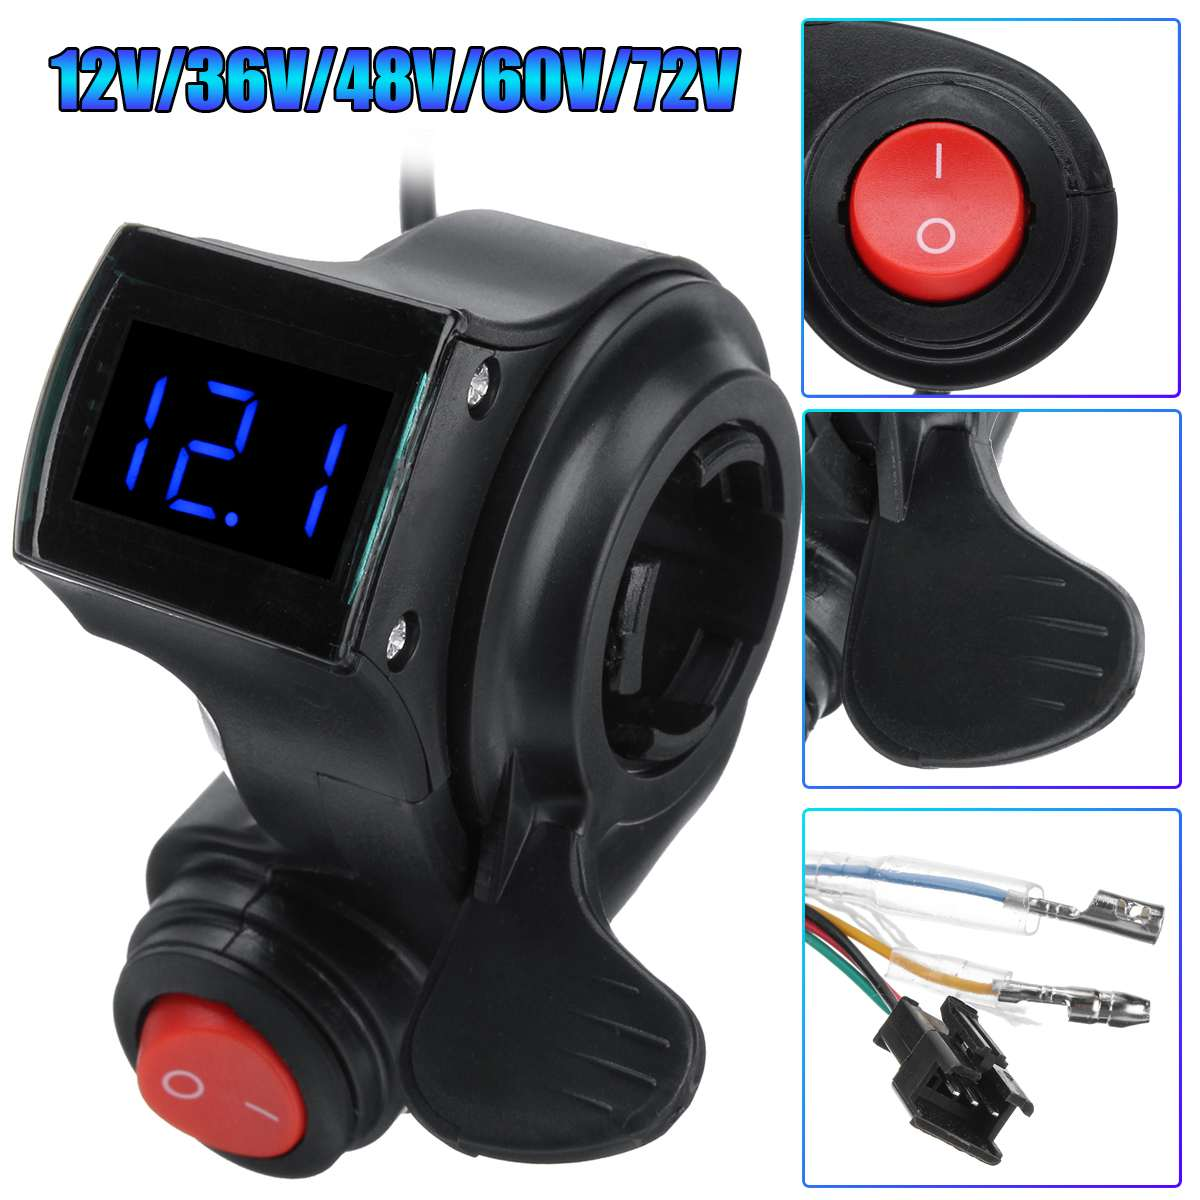 Selfless Finger Thumb Throttle Electric Scooter With Power Switch Led Display Switch Handlebar Grips For Electric Bike 36v/48/60/72v Beautiful And Charming Automobiles & Motorcycles